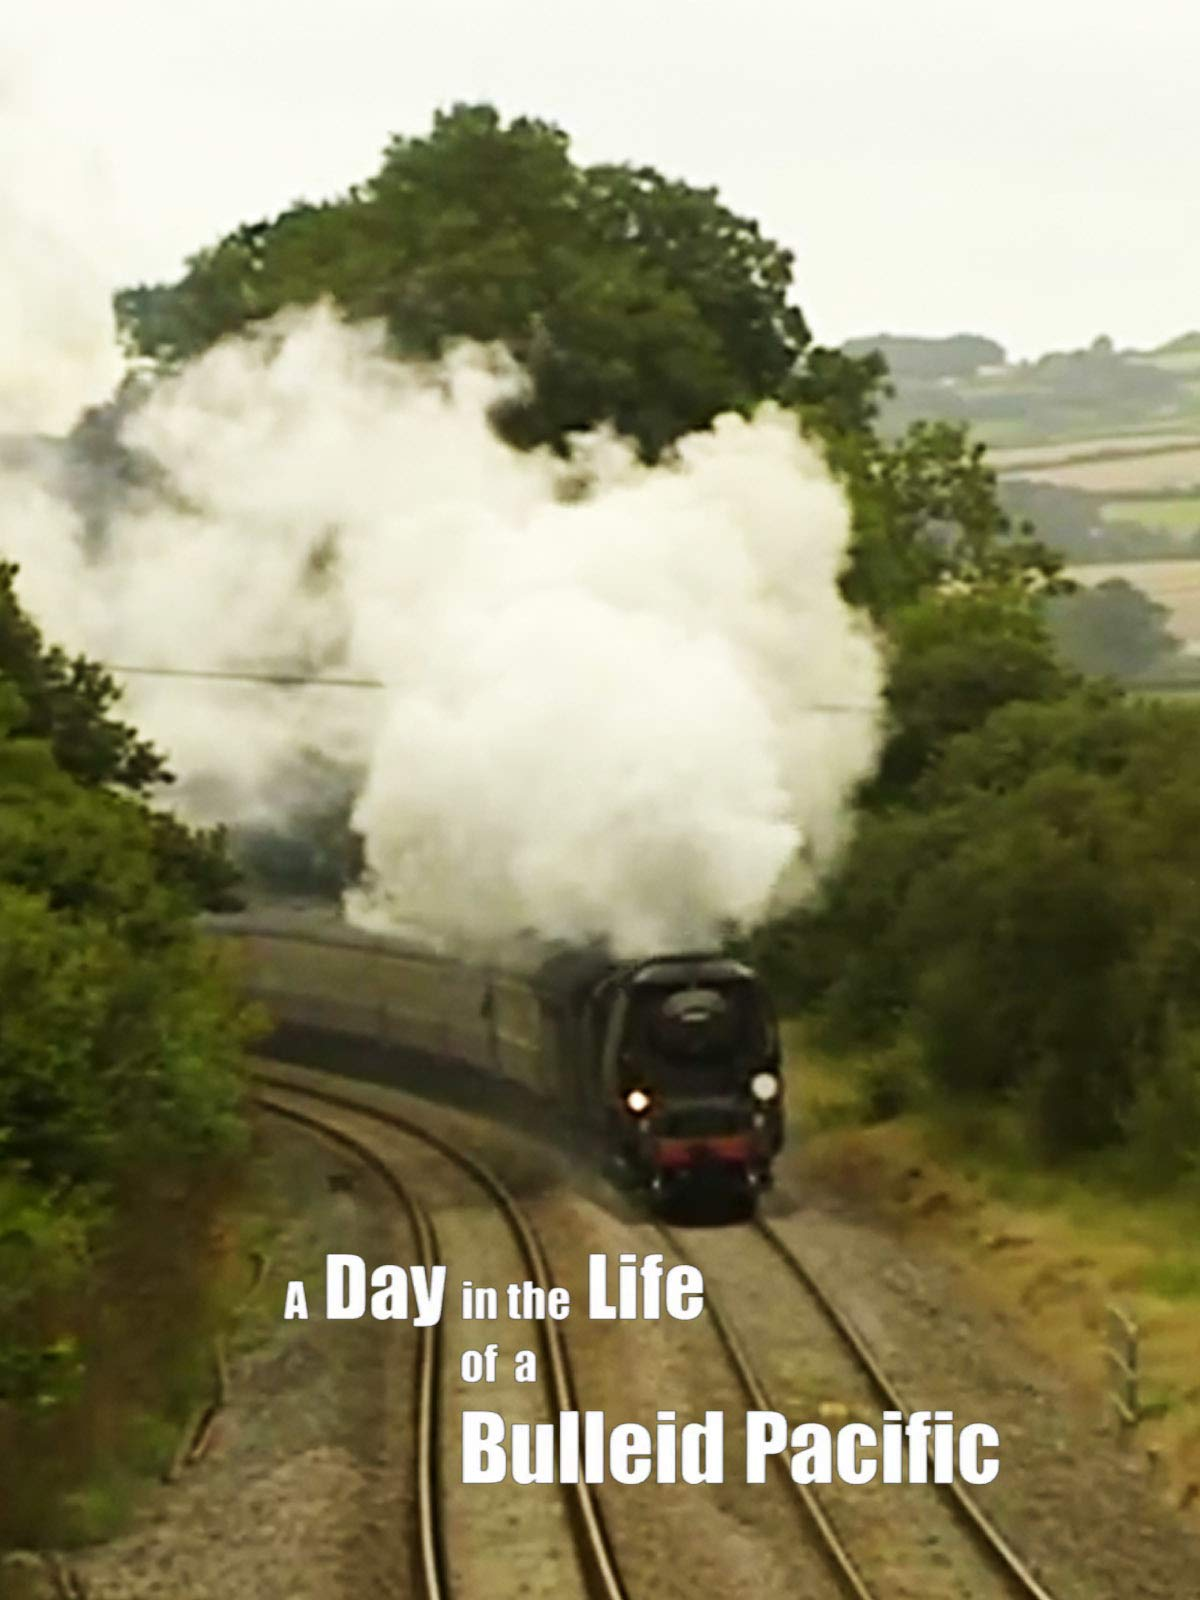 A Day in the Life of a Bulleid Pacific